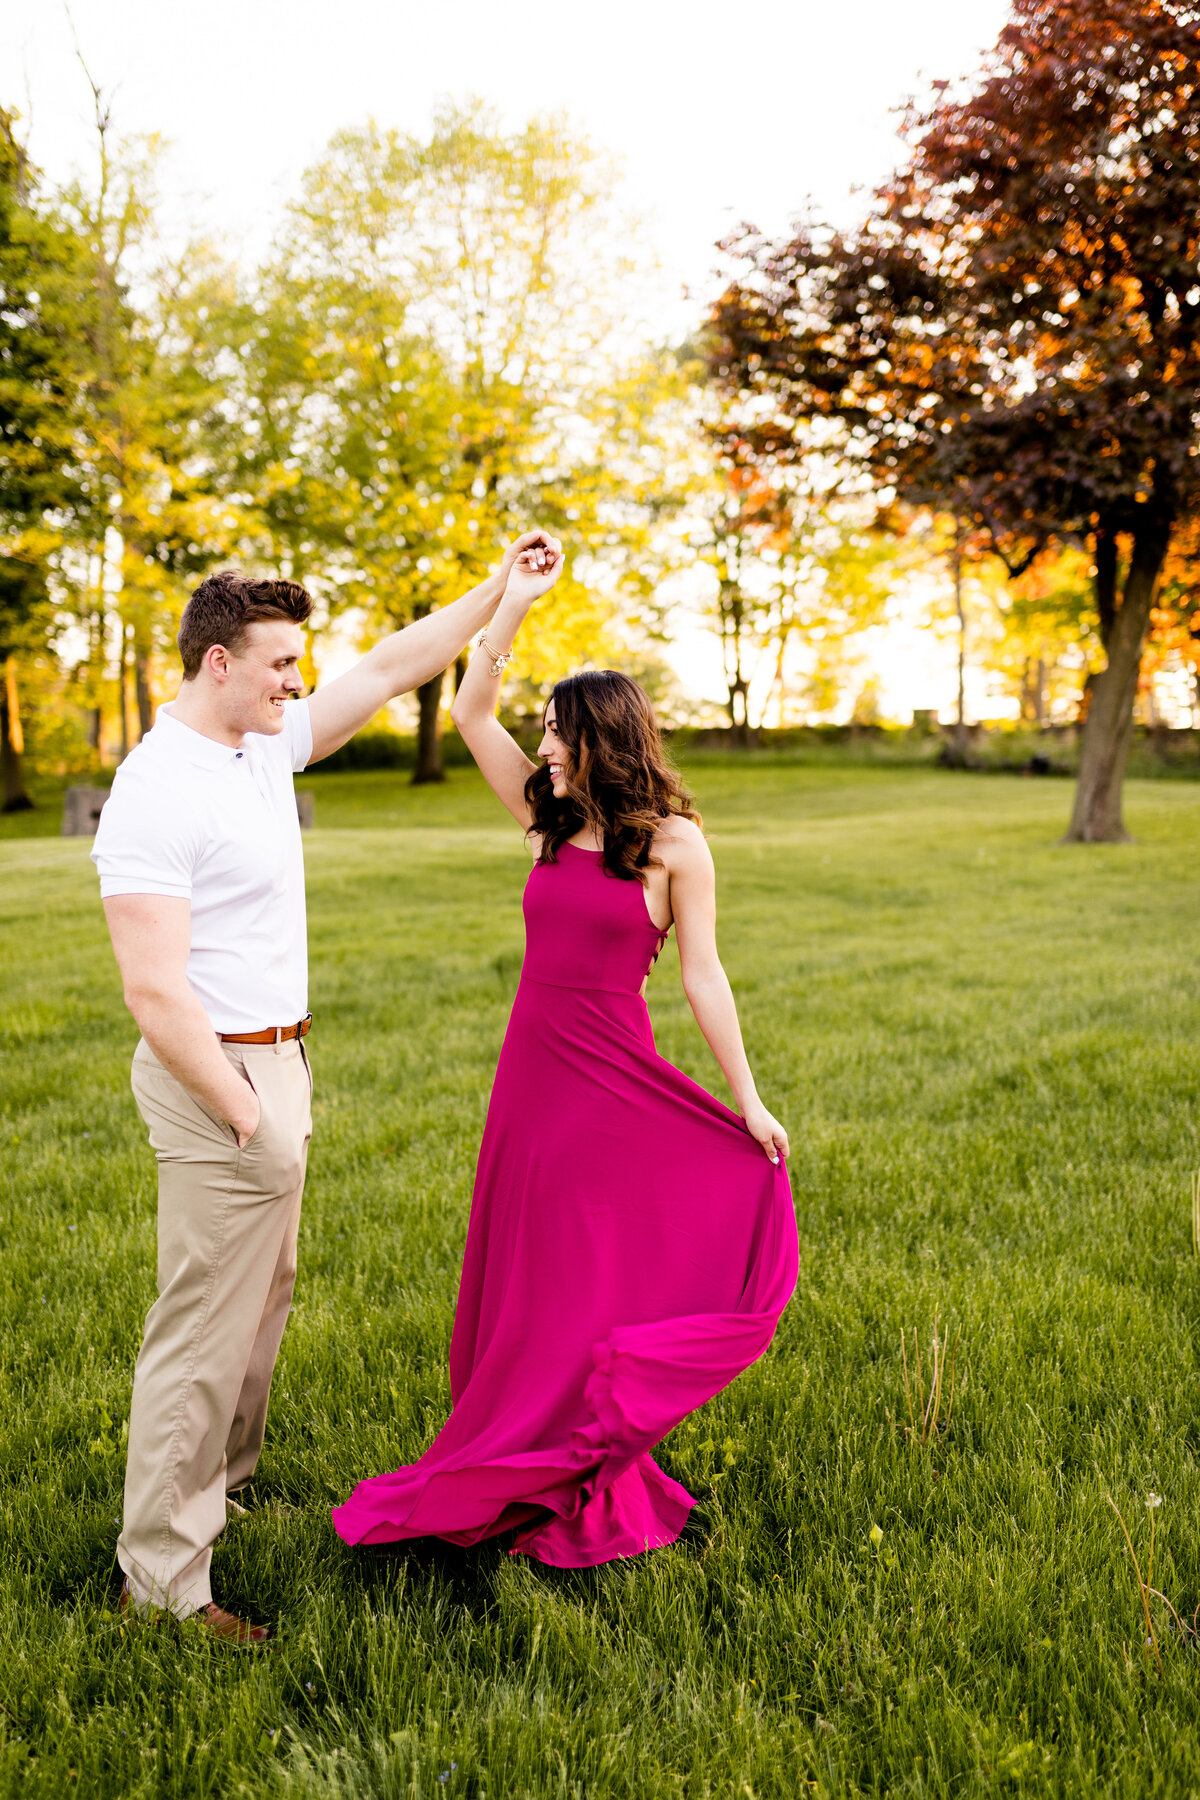 Caitlin and Luke Photography Wedding Engagement Luxury Illinois Destination Colorful Bright Joyful Cheerful Photographer14